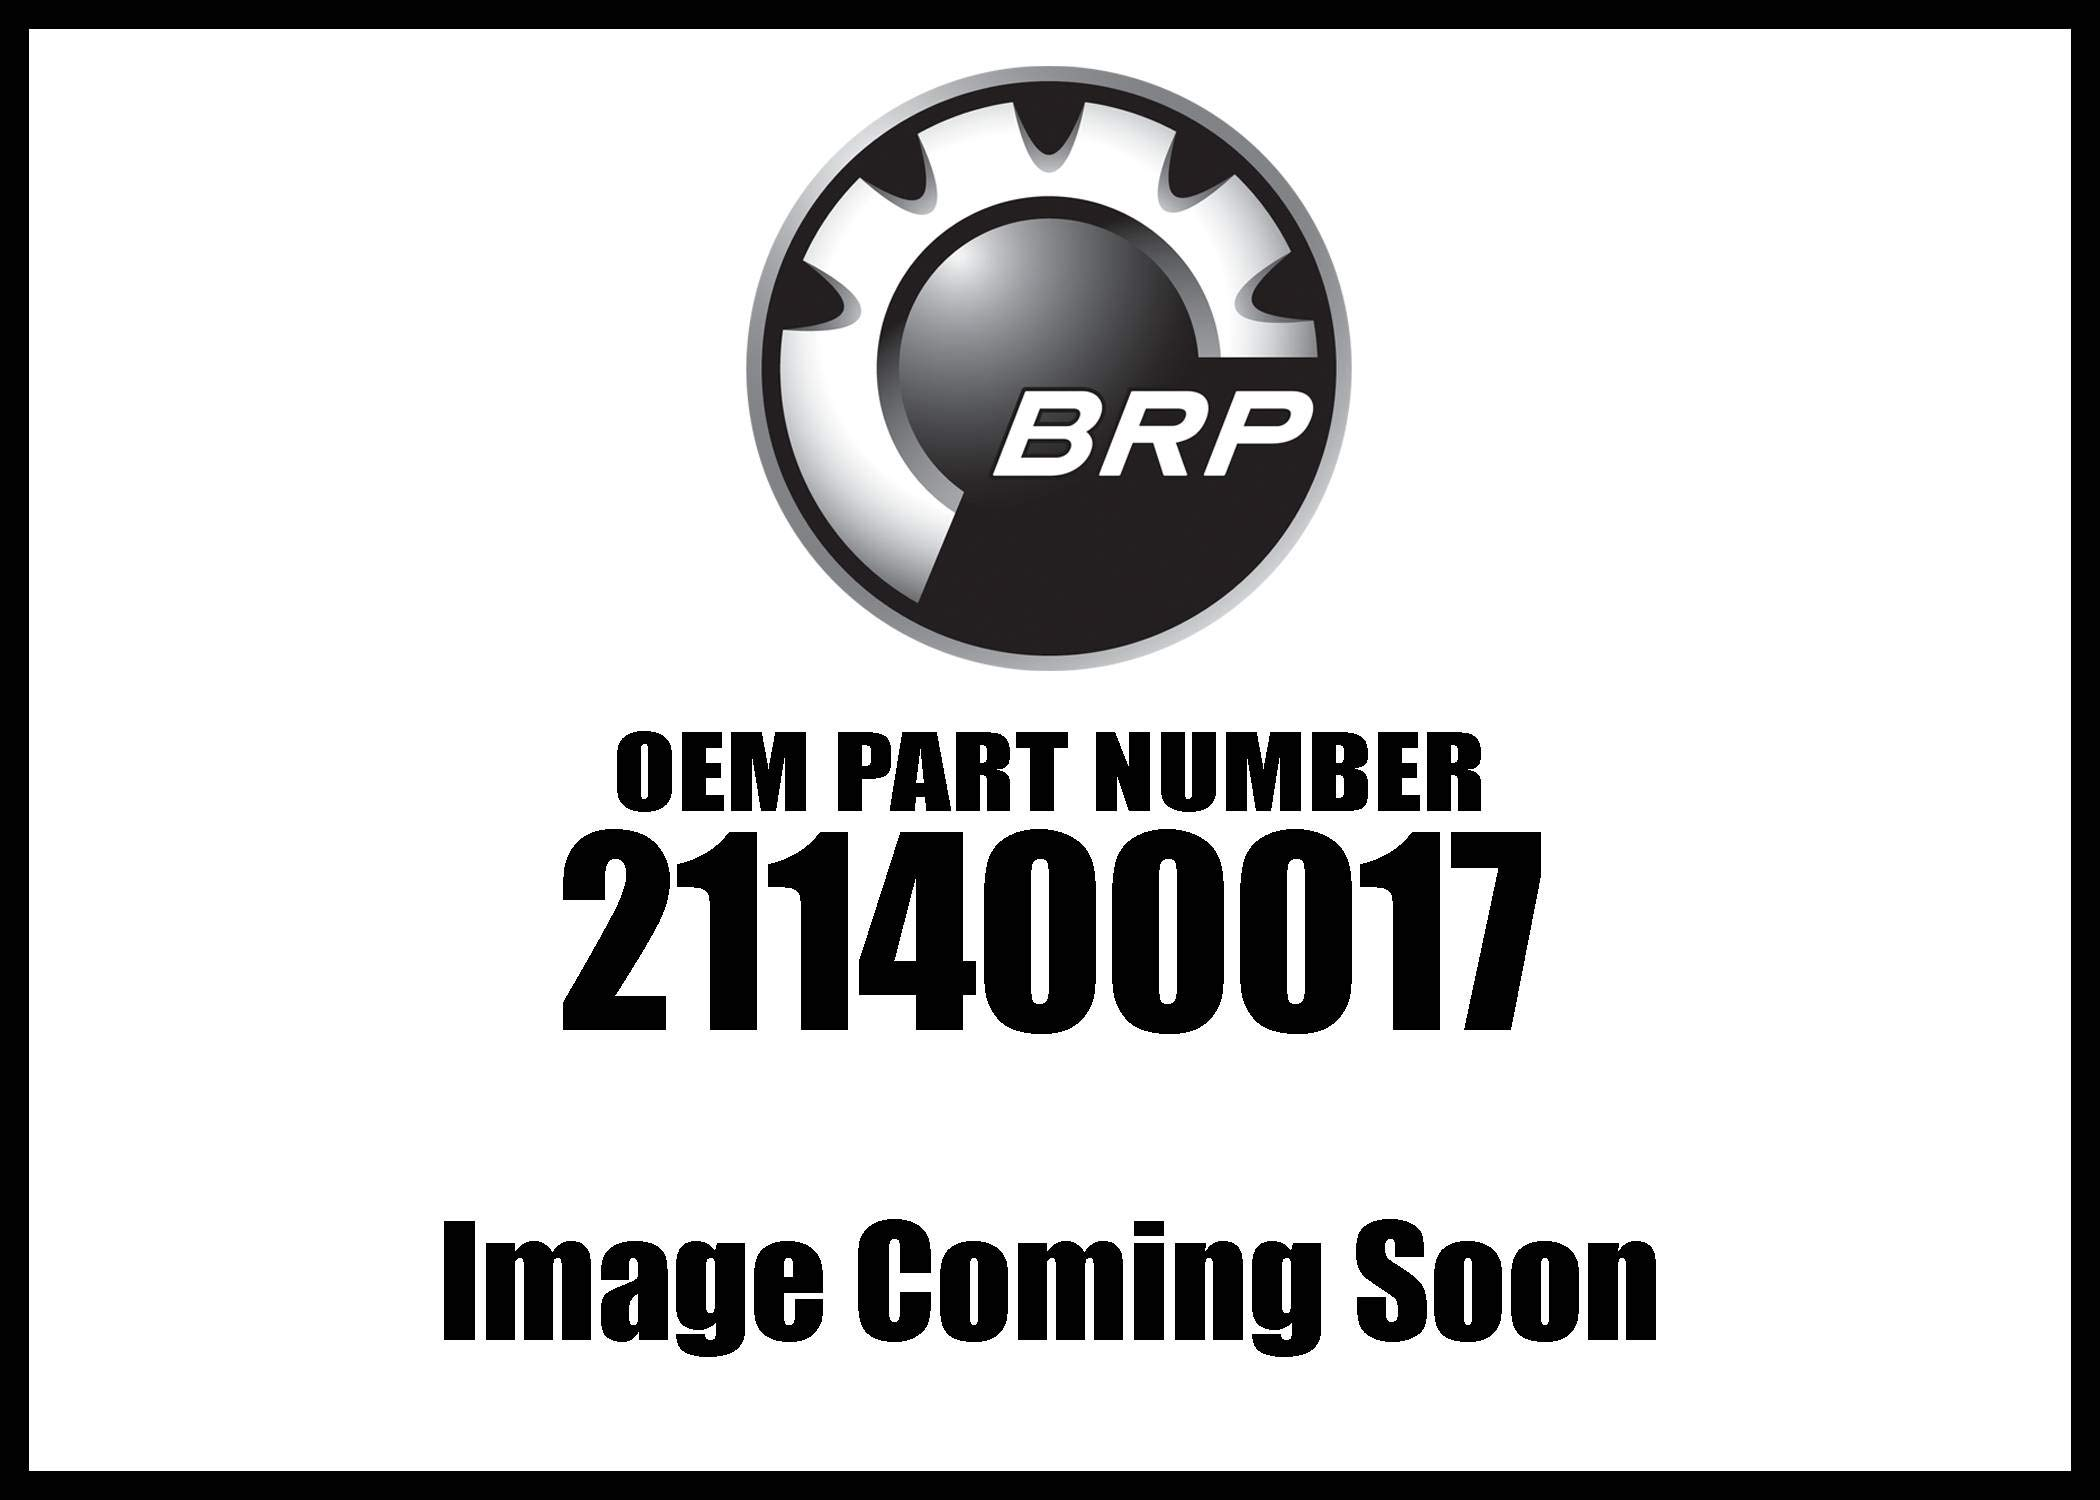 Can-Am 1999-2018 Commander 1000 Ds 650/Ds 650 Baja/X Cotter Pin 211400017 New Oem by Can-Am (Image #1)